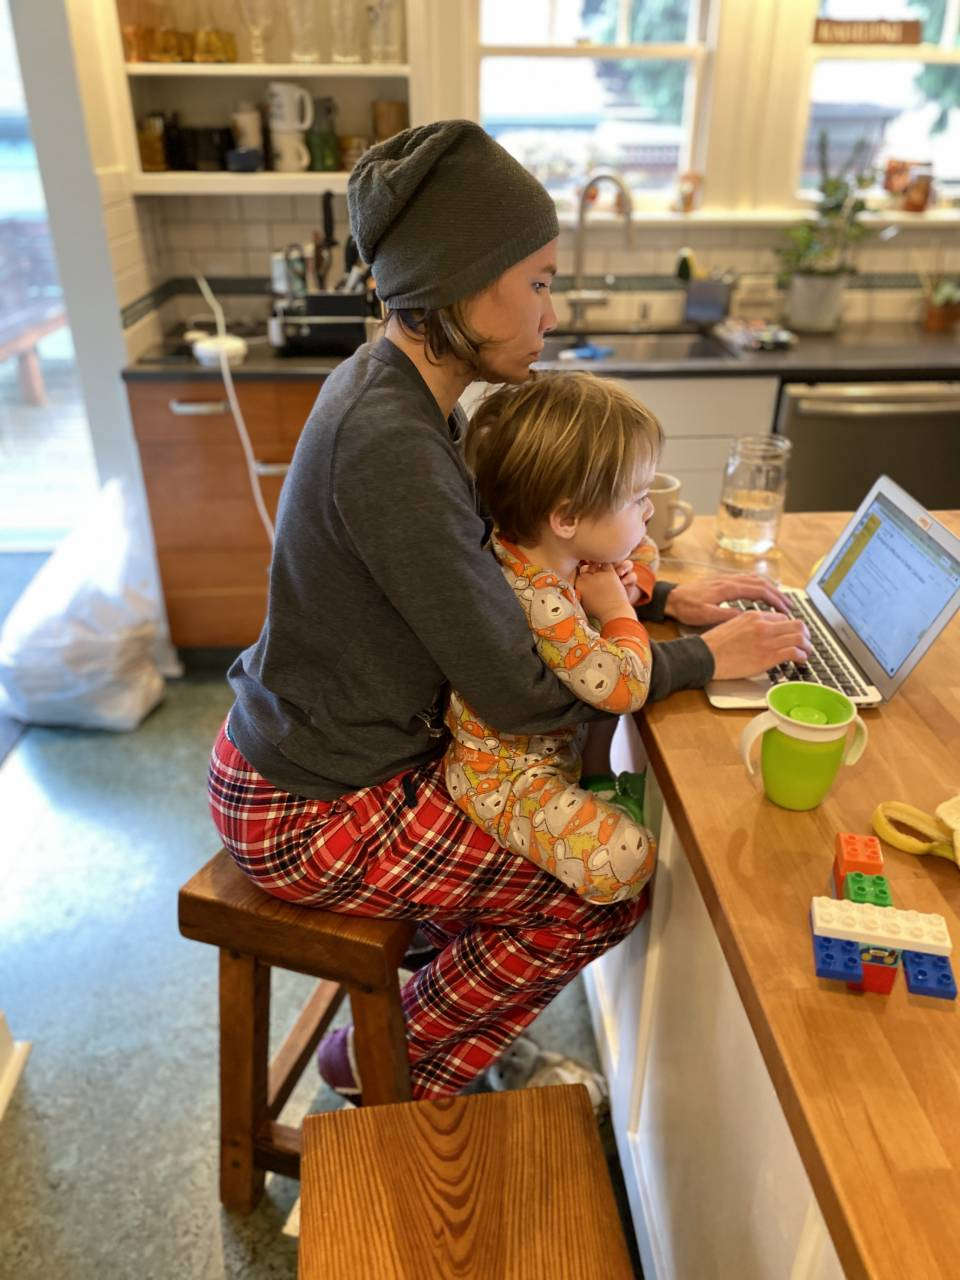 It's hard to find the time to write, but the Scribente Maternum writers retreat aims to help mothers find that time that they are seeking.